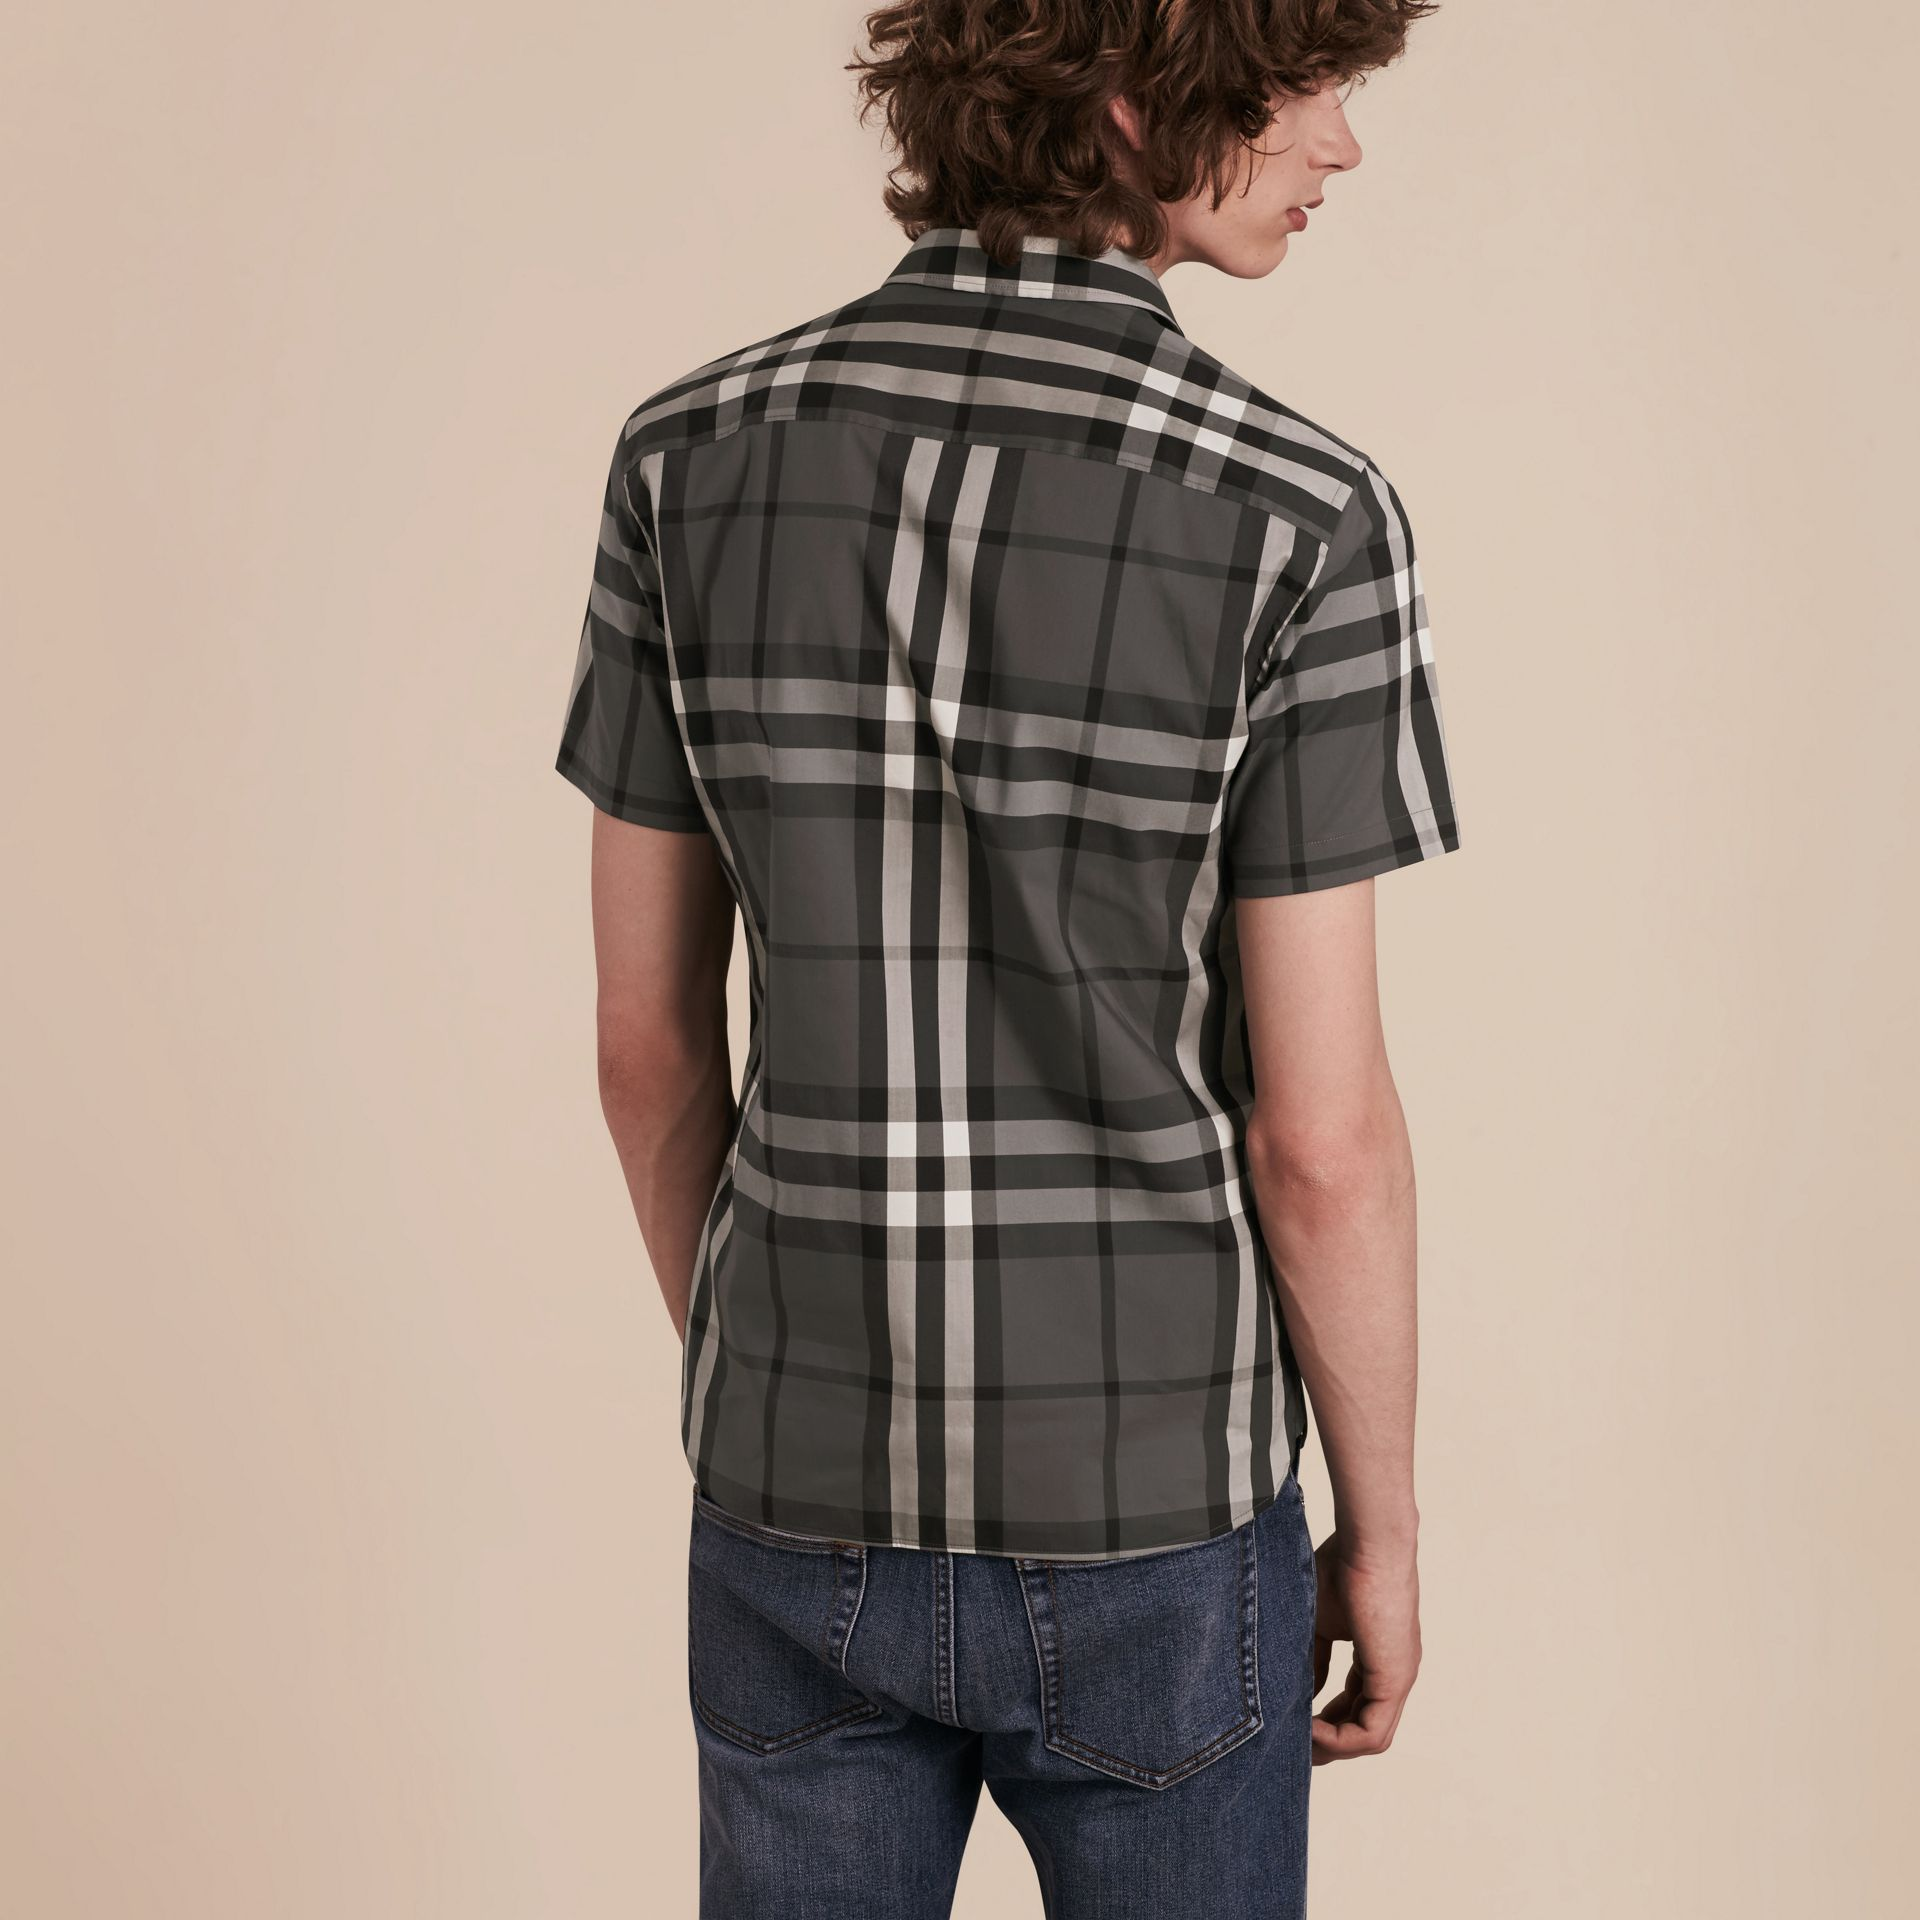 Charcoal Short-sleeved Check Stretch Cotton Shirt Charcoal - gallery image 3